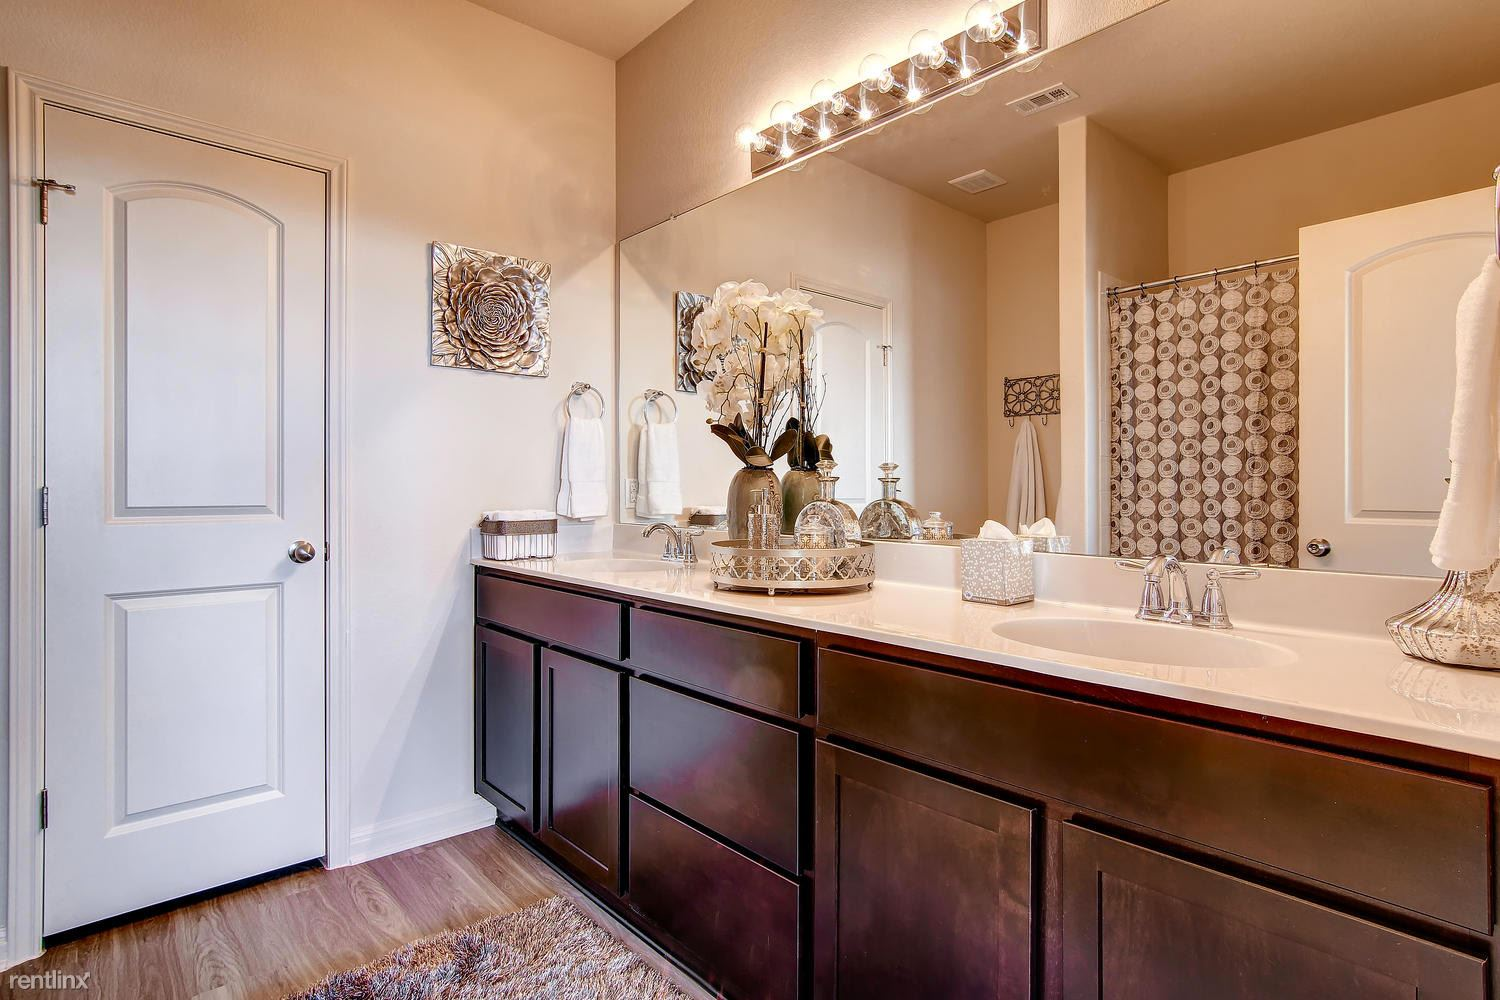 DoubleEagleTownhomes - Model - large-049-Double Eagle Townhomes 1 -1500x1000-72dpi